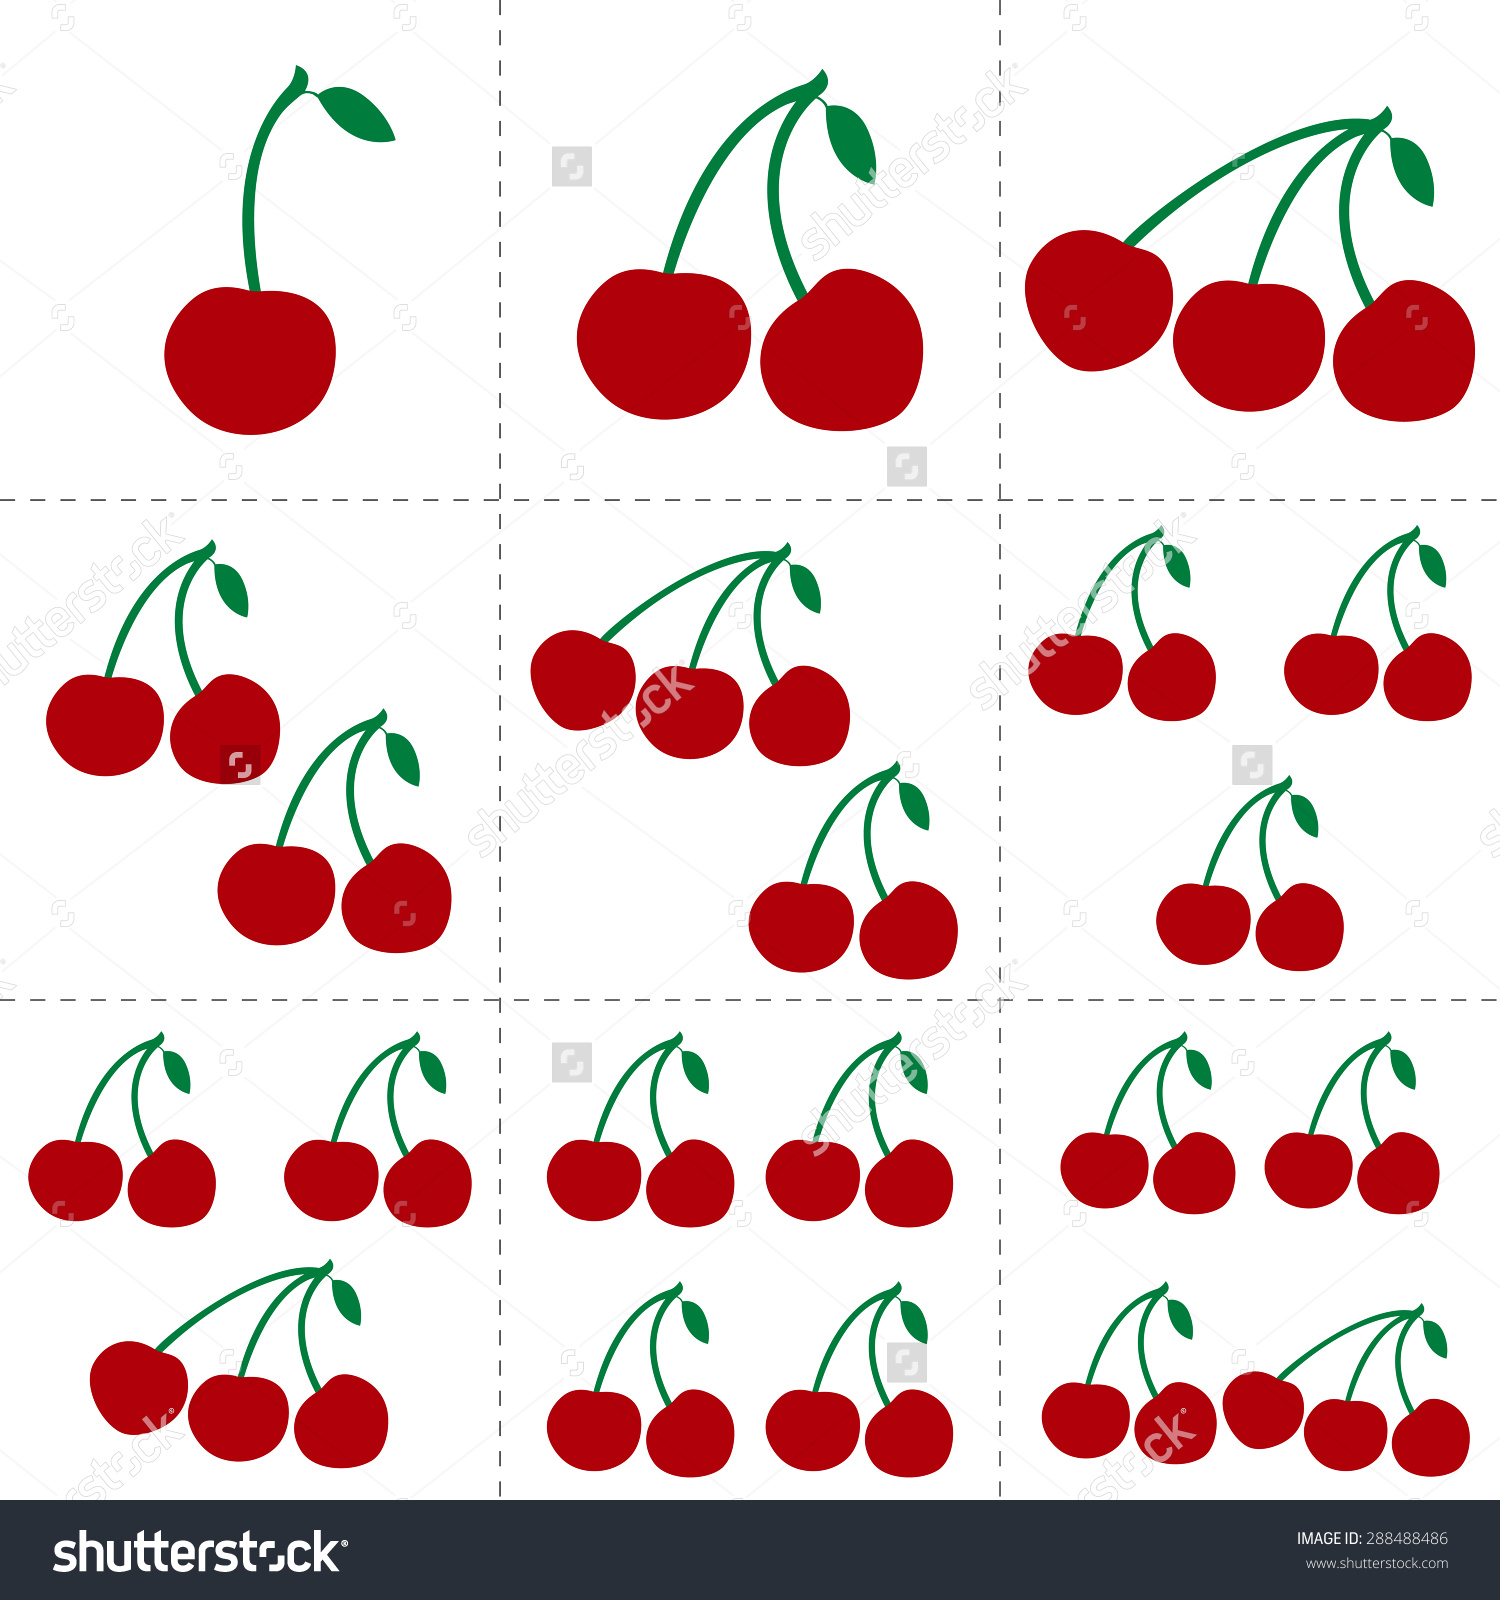 Fruit Collection For Children Design. Flash Cards For Counting.